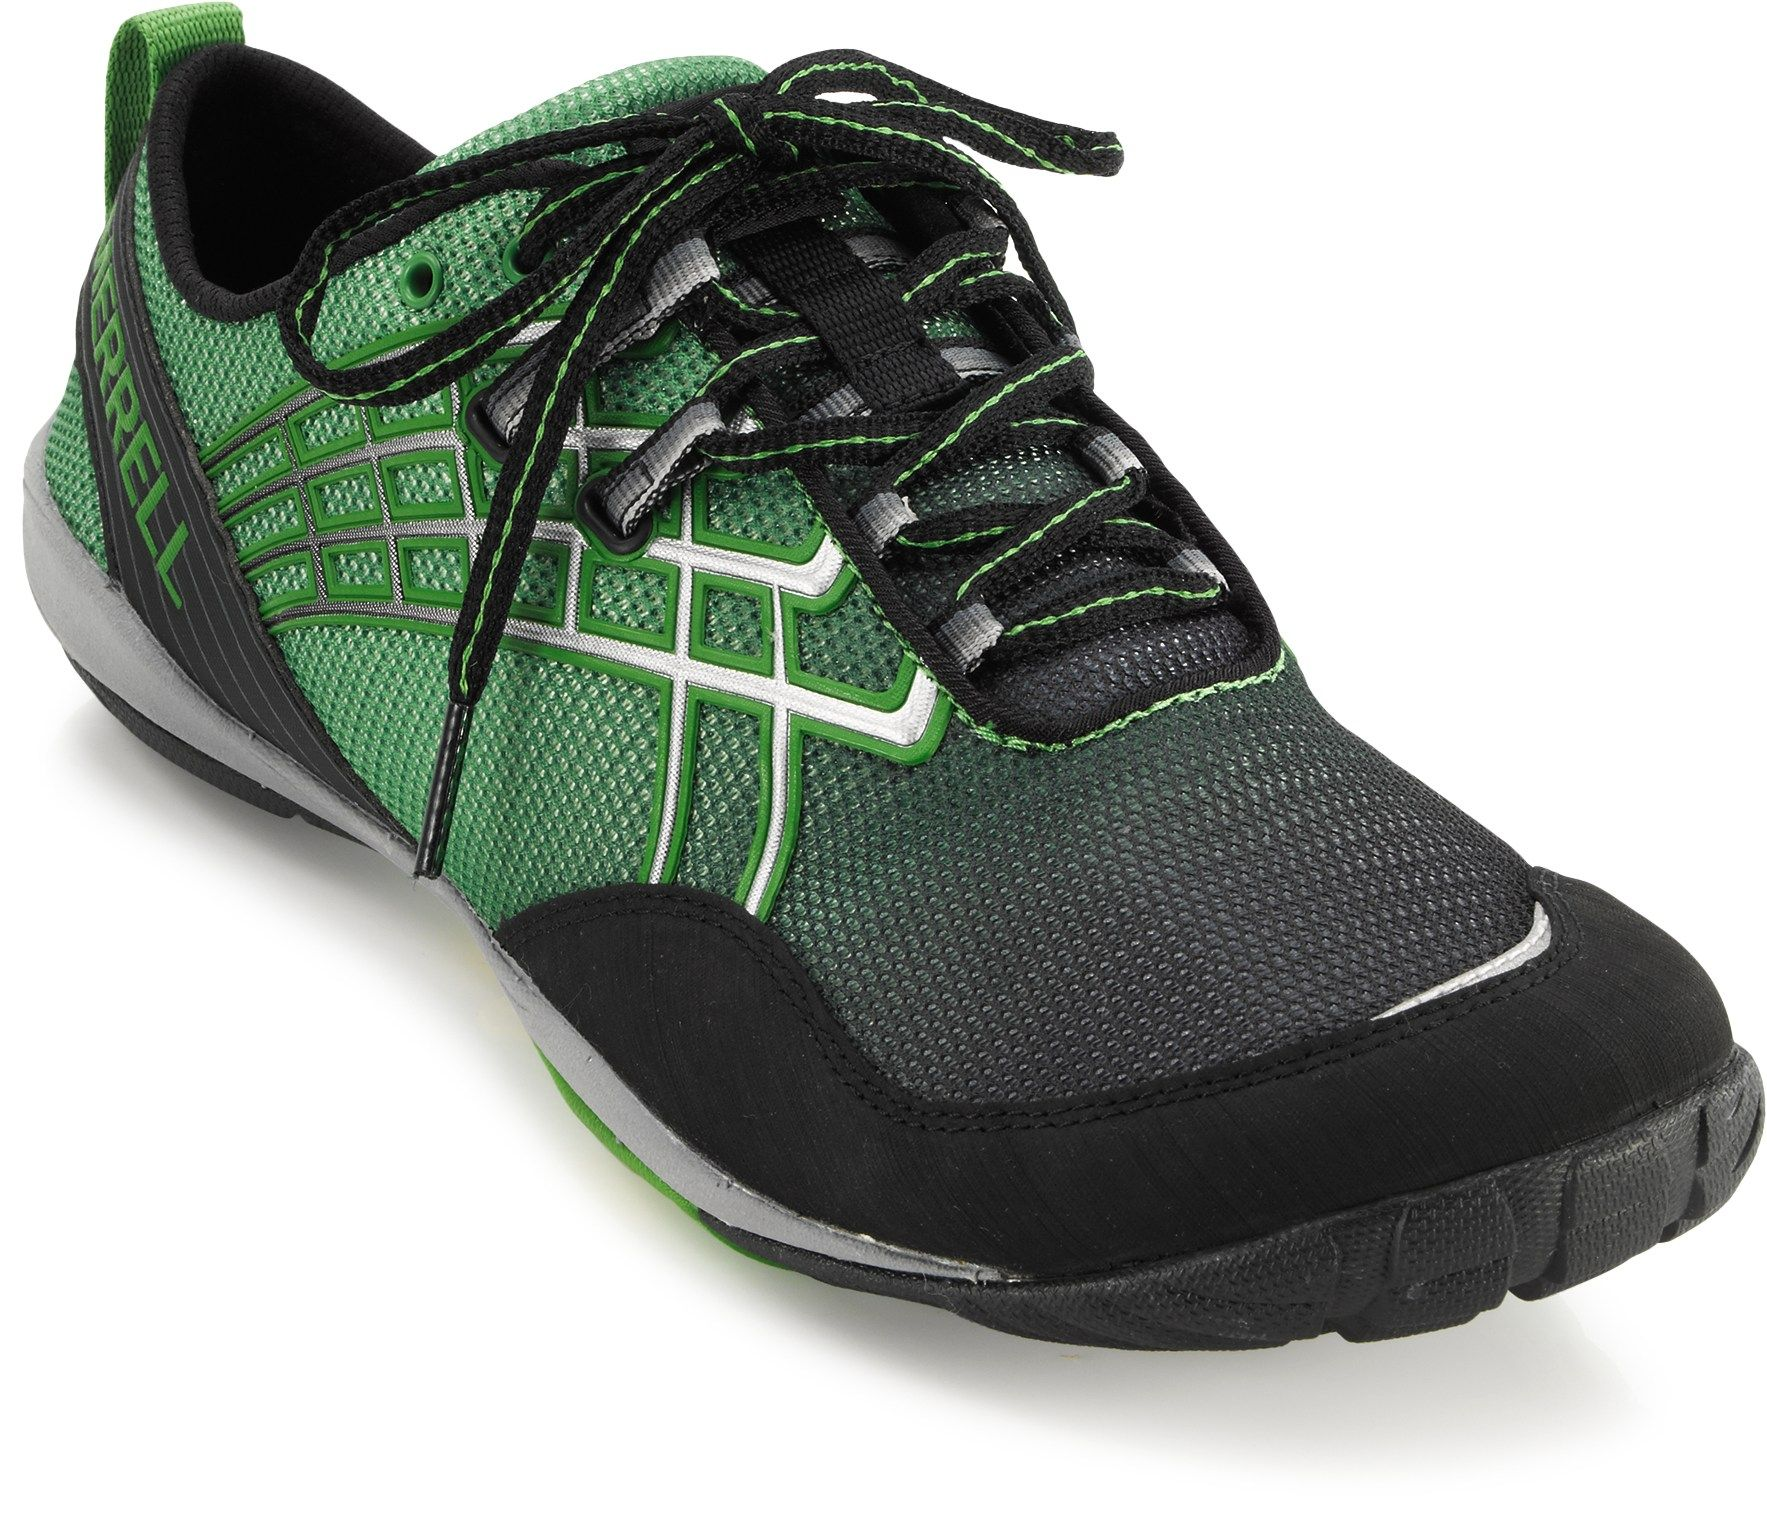 Merrell Trail Glove 2 Cross-training Shoes Deliver